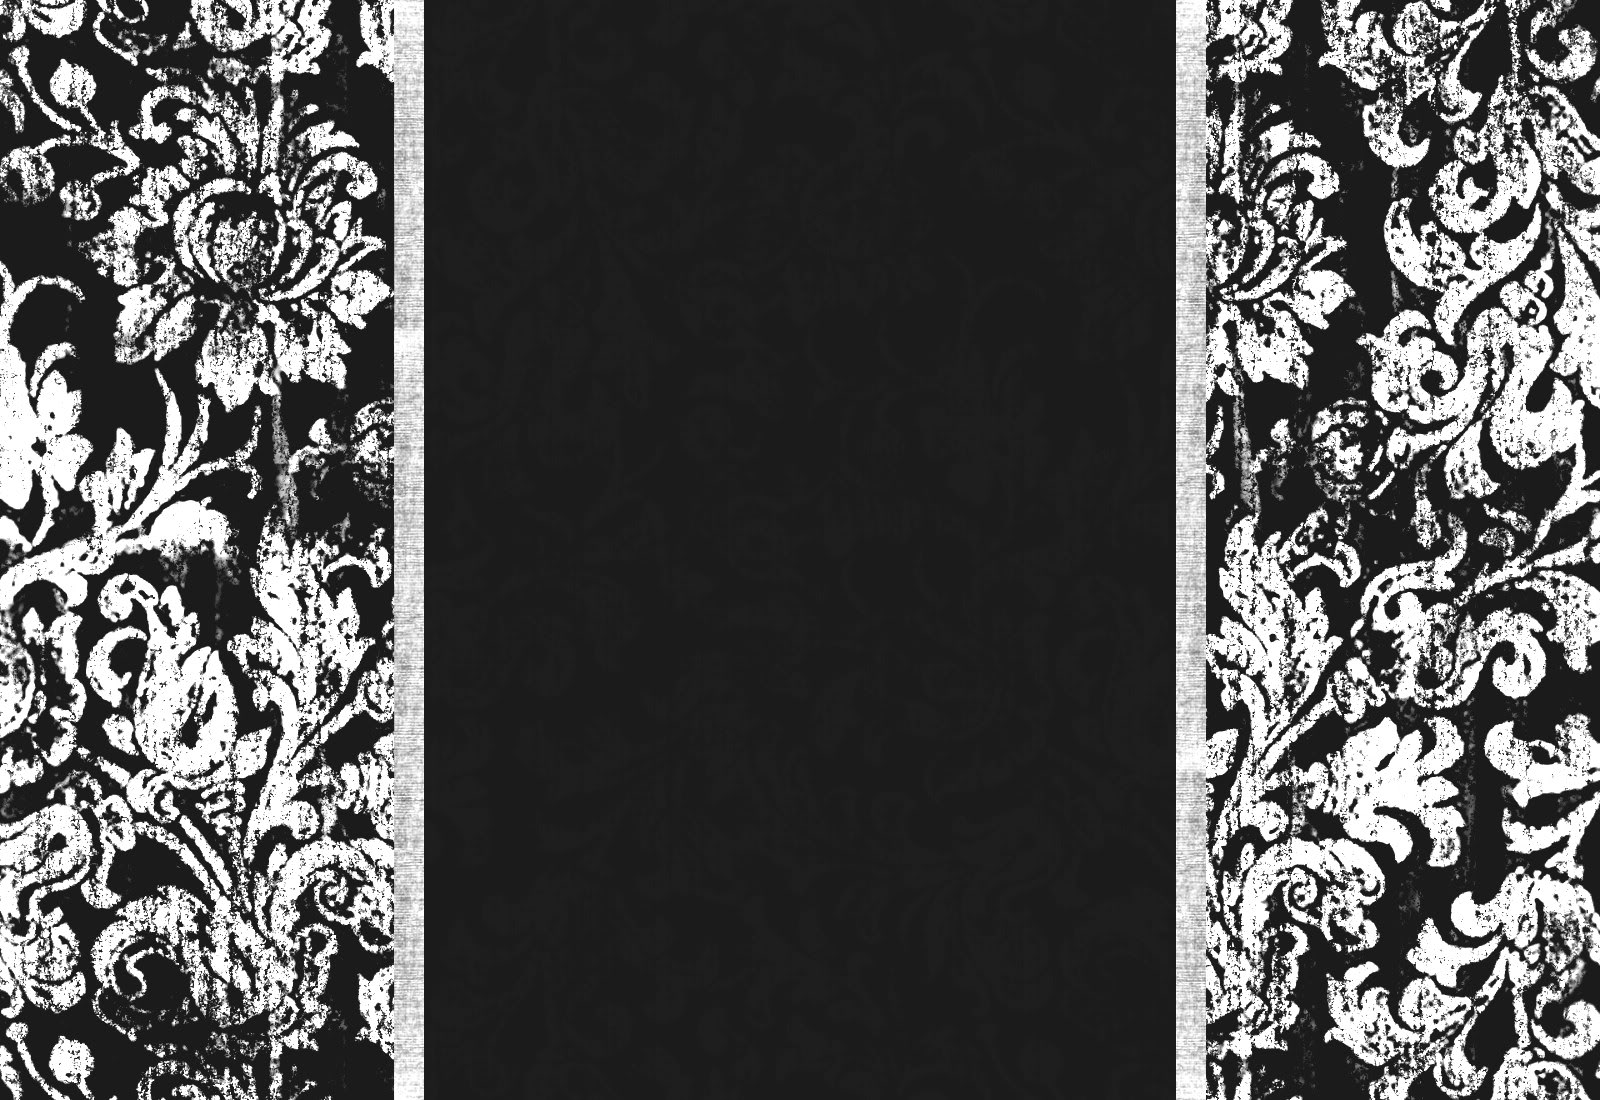 Background Designs Black And White Flowers Images Pictures   Becuo 1600x1100